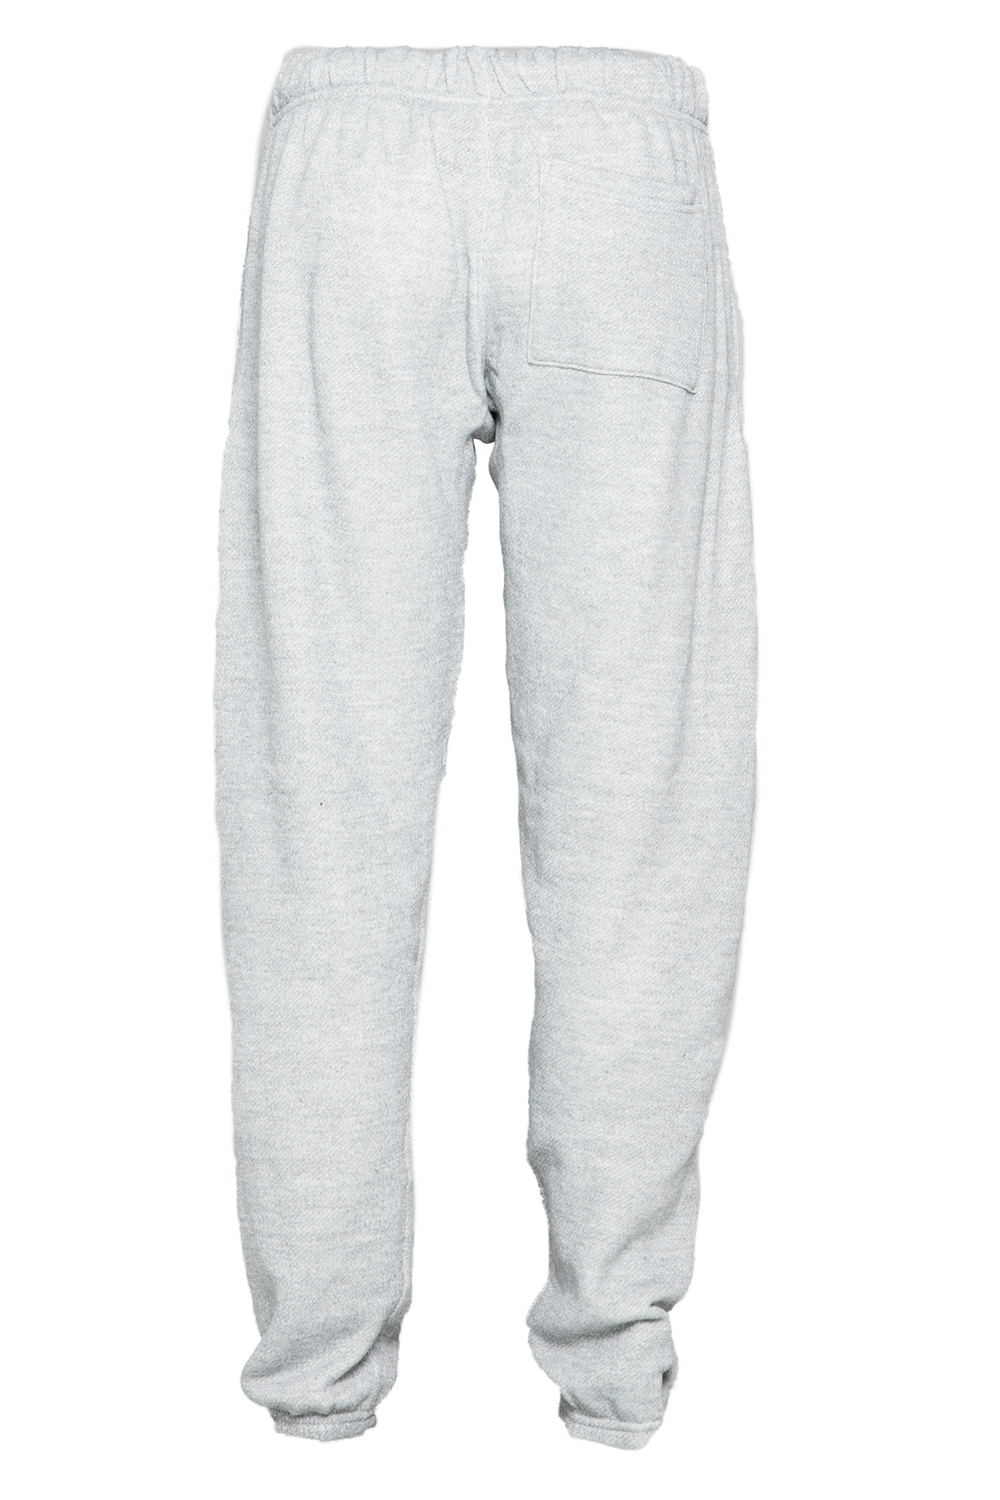 Ayrton Sweatpants - Heather Grey